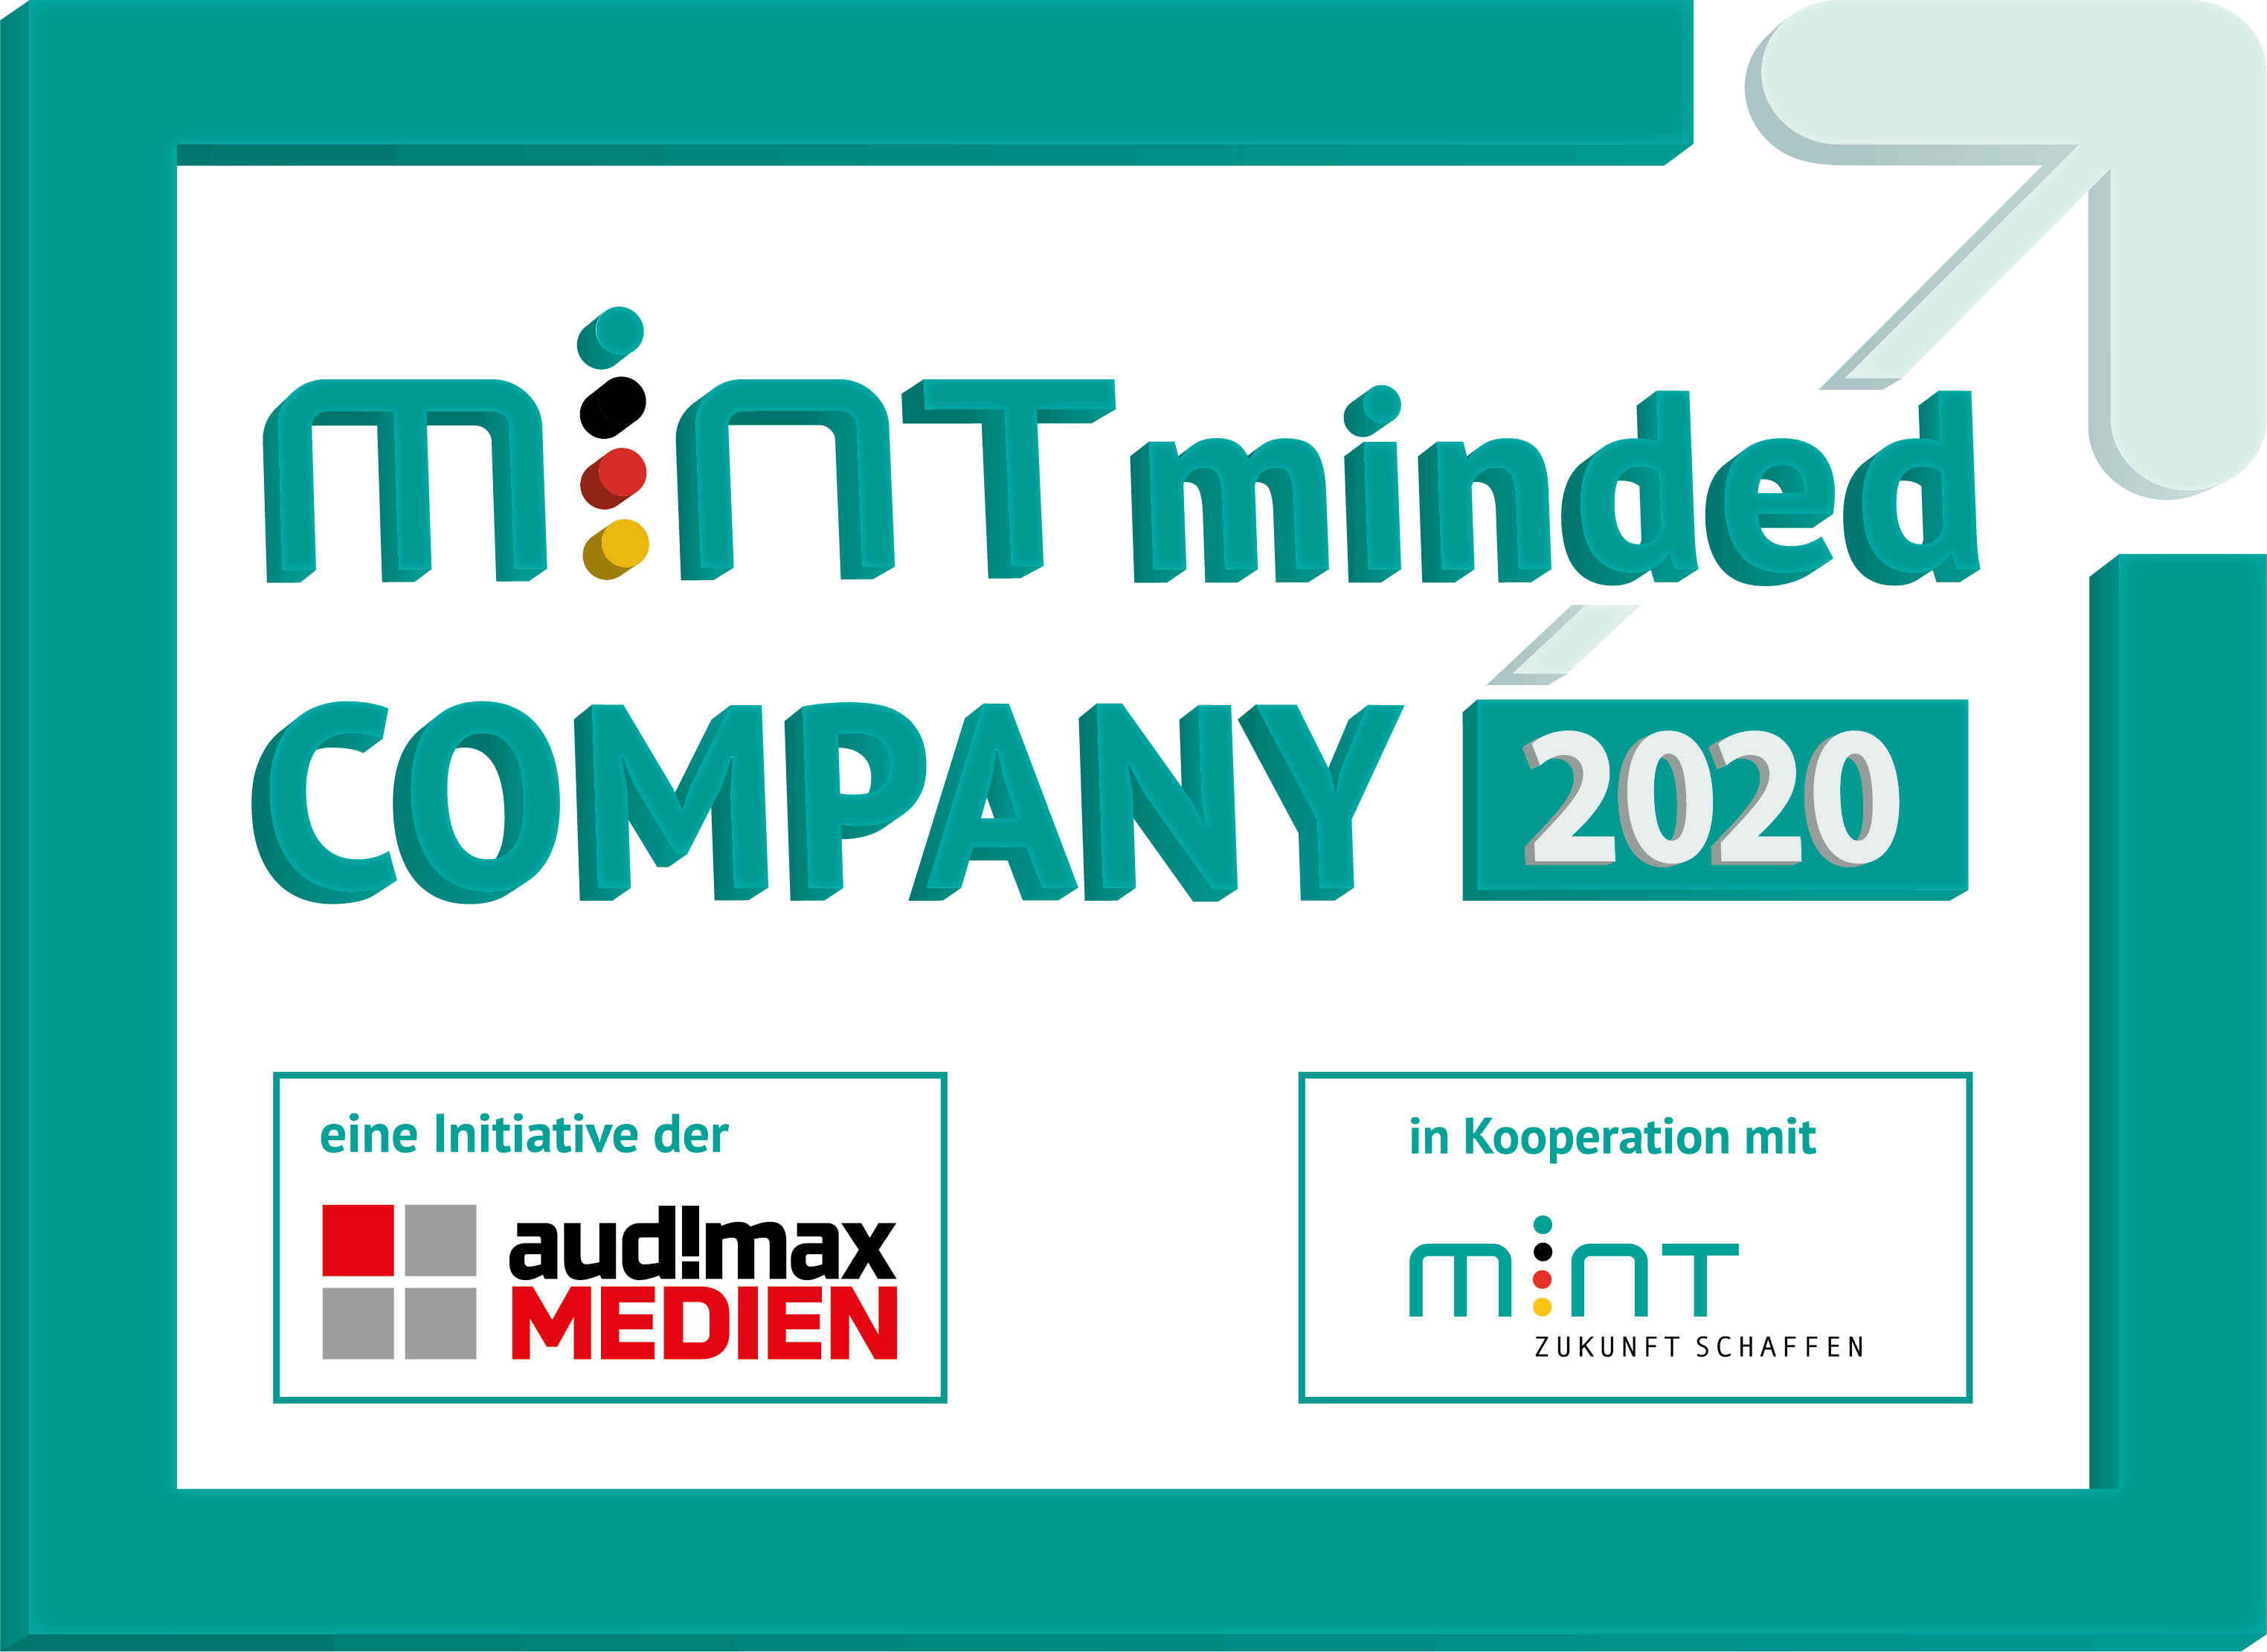 Siegel MINT minded Company 2020 für accantec